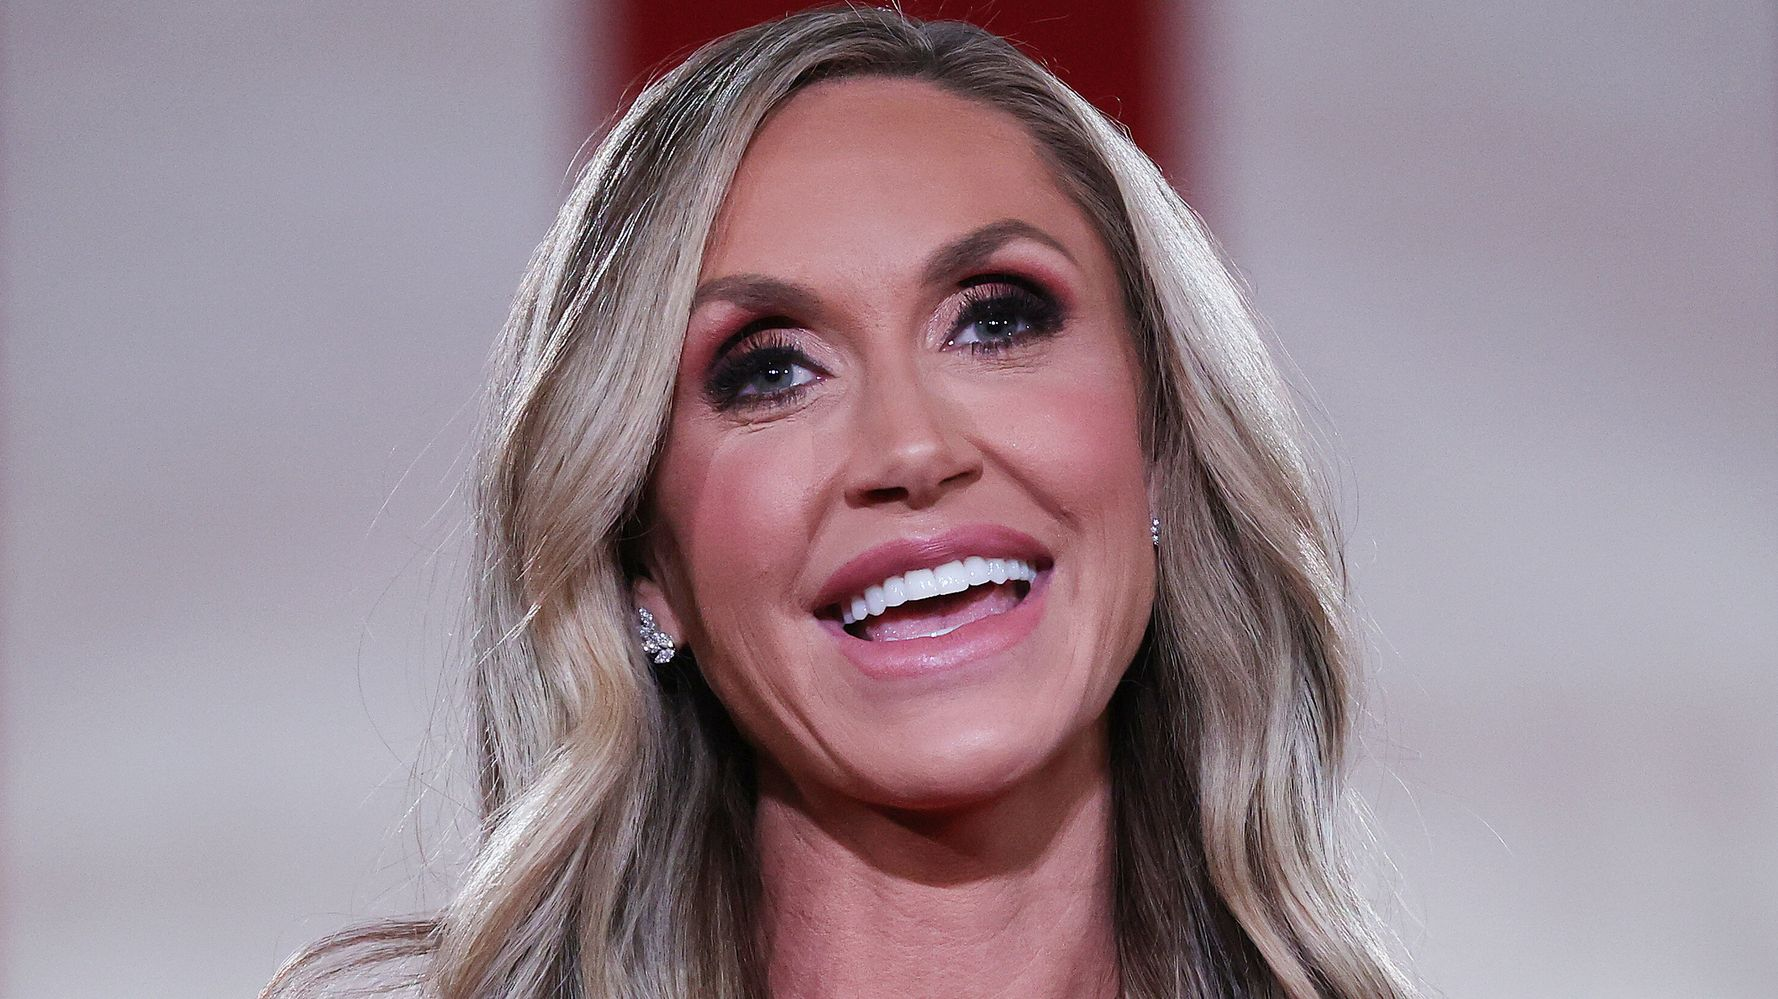 Lara Trump Urges Border Residents To 'Get Guns And Be Ready' For Migrants